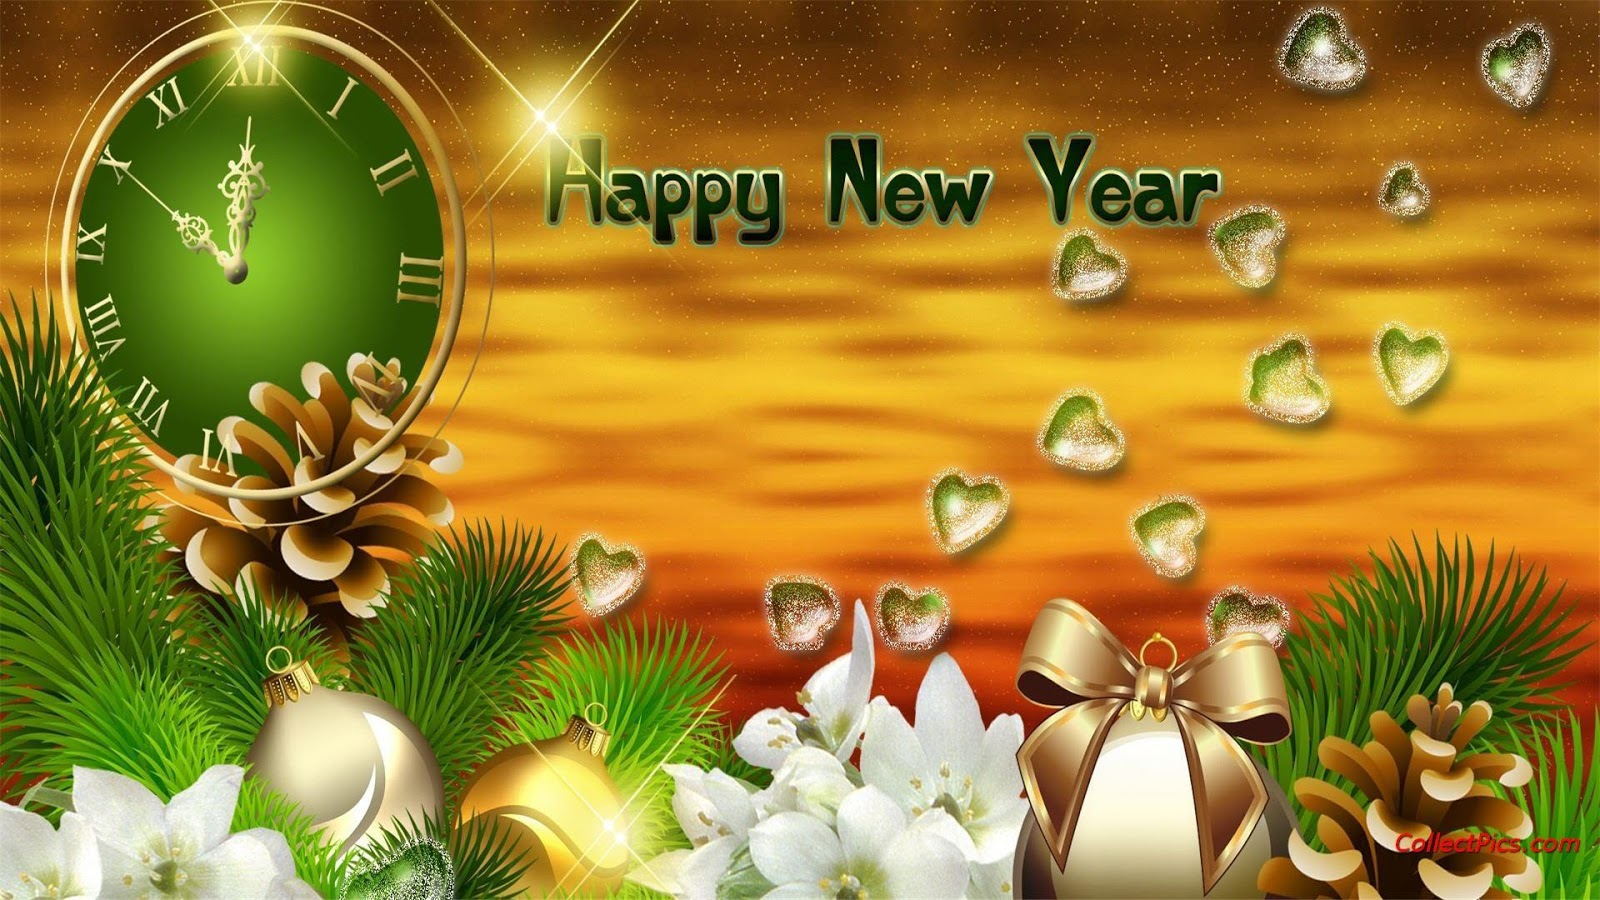 Free Download Download 20 Happy New Year 2016 Mobile Wallpapers